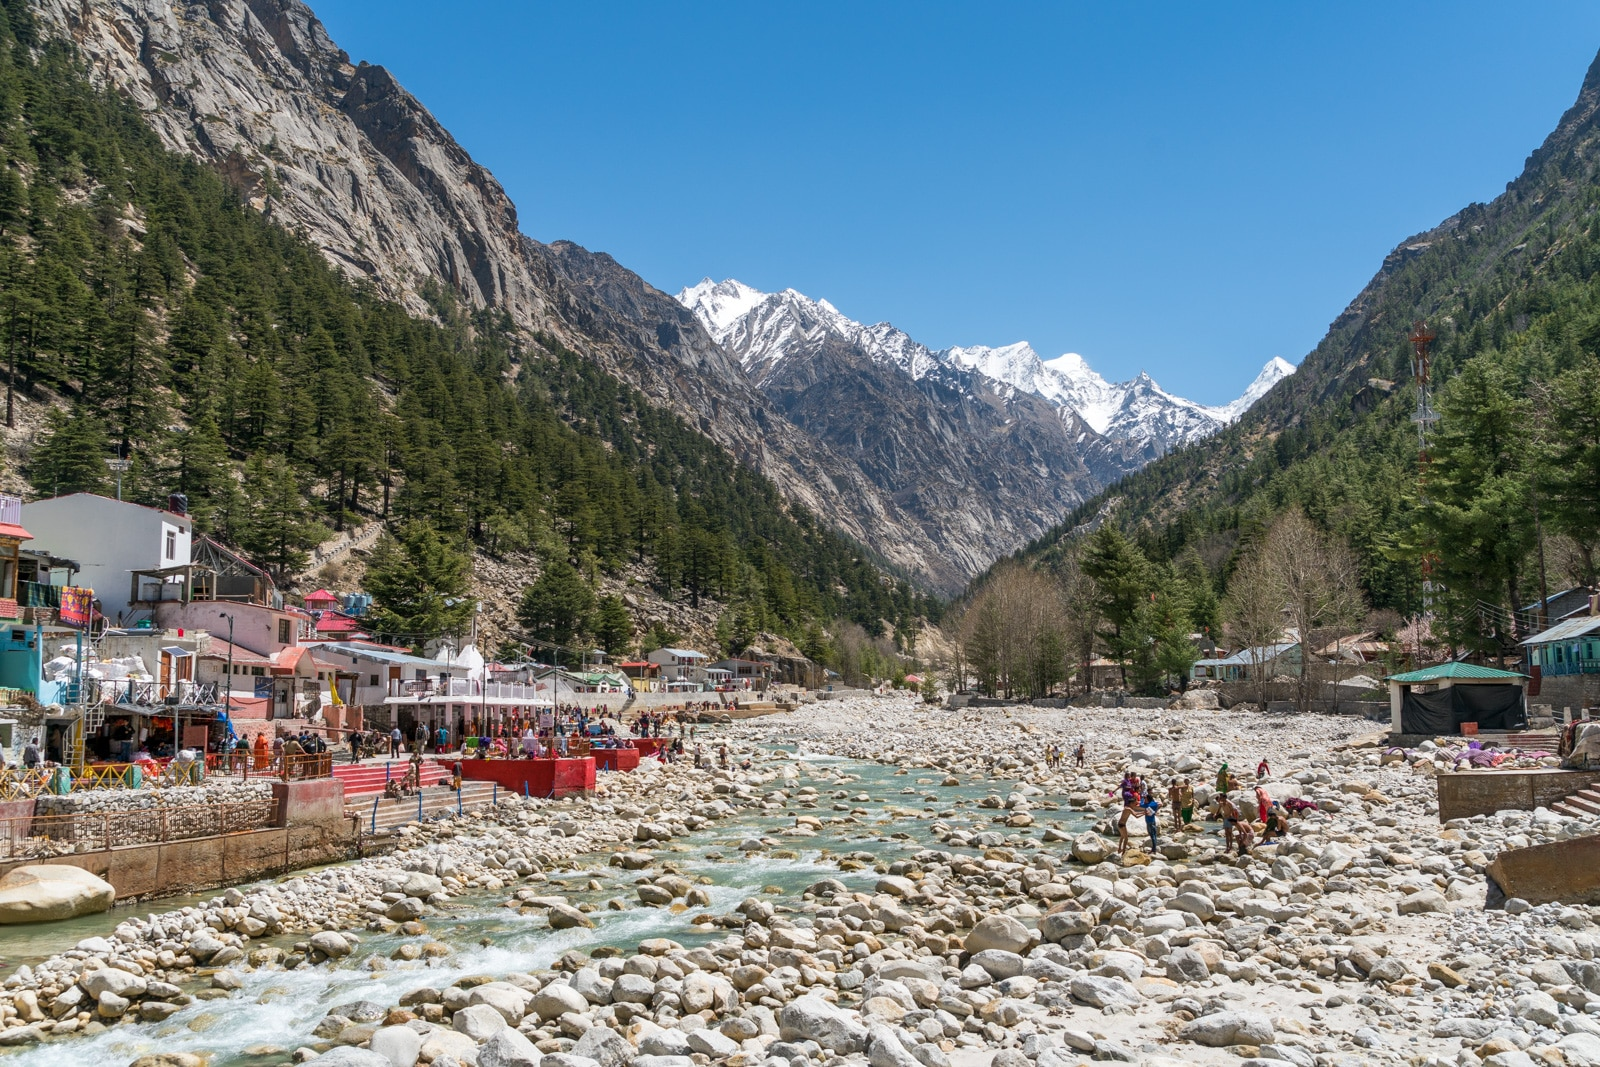 Guide to trekking to the start of the Ganges River in Uttarakhand, India - Bhagirathi River flowing through Gangotri town with pilgrims washing in the water - Lost With Purpose travel blog